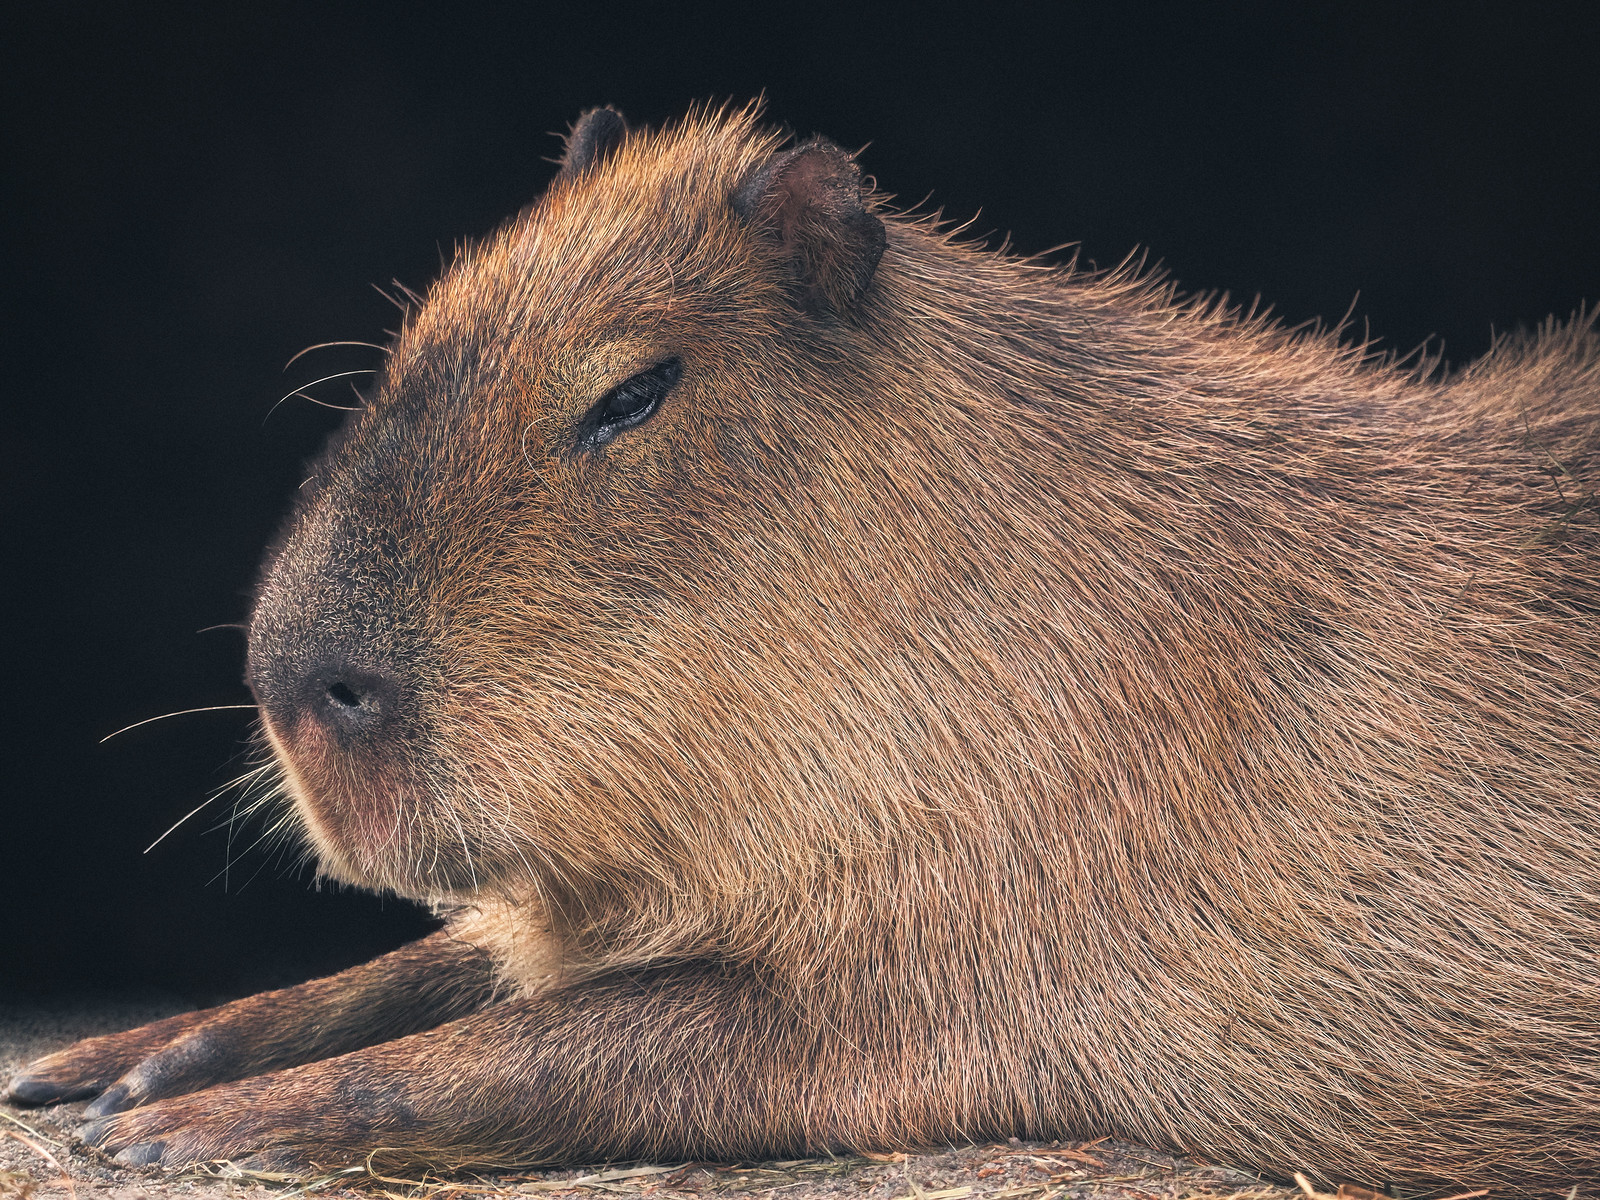 Closeup of a Capybara